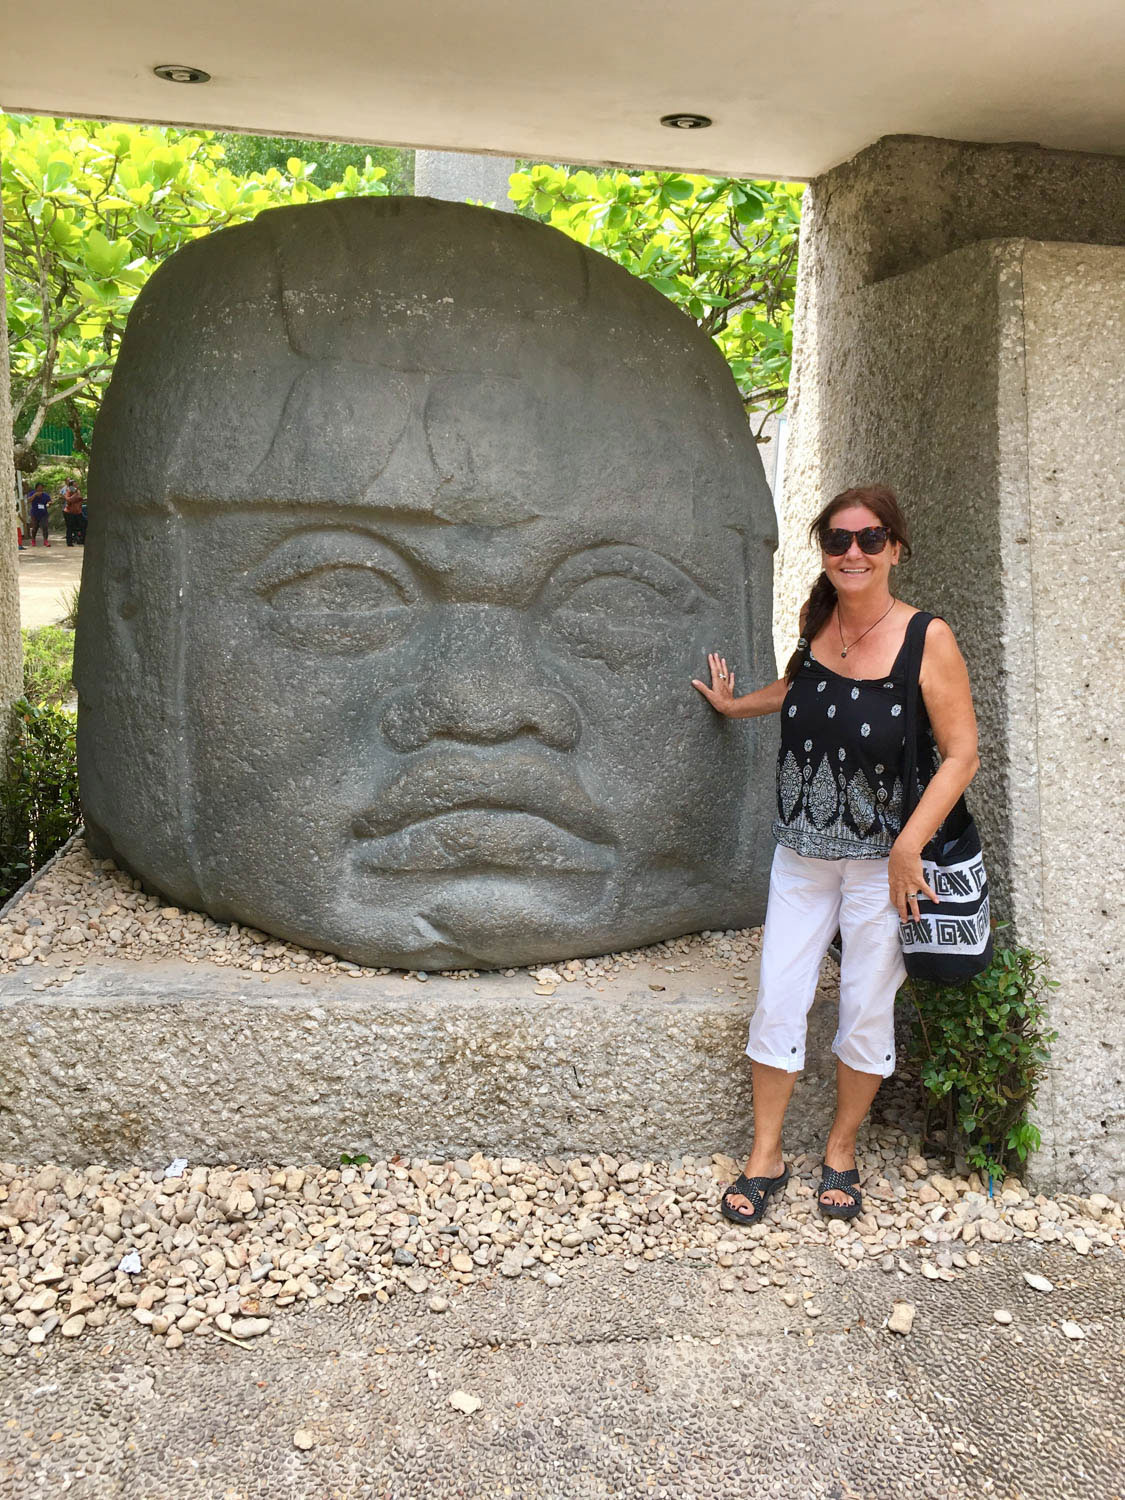 With an Olmec colossal head at La Venta Museum.